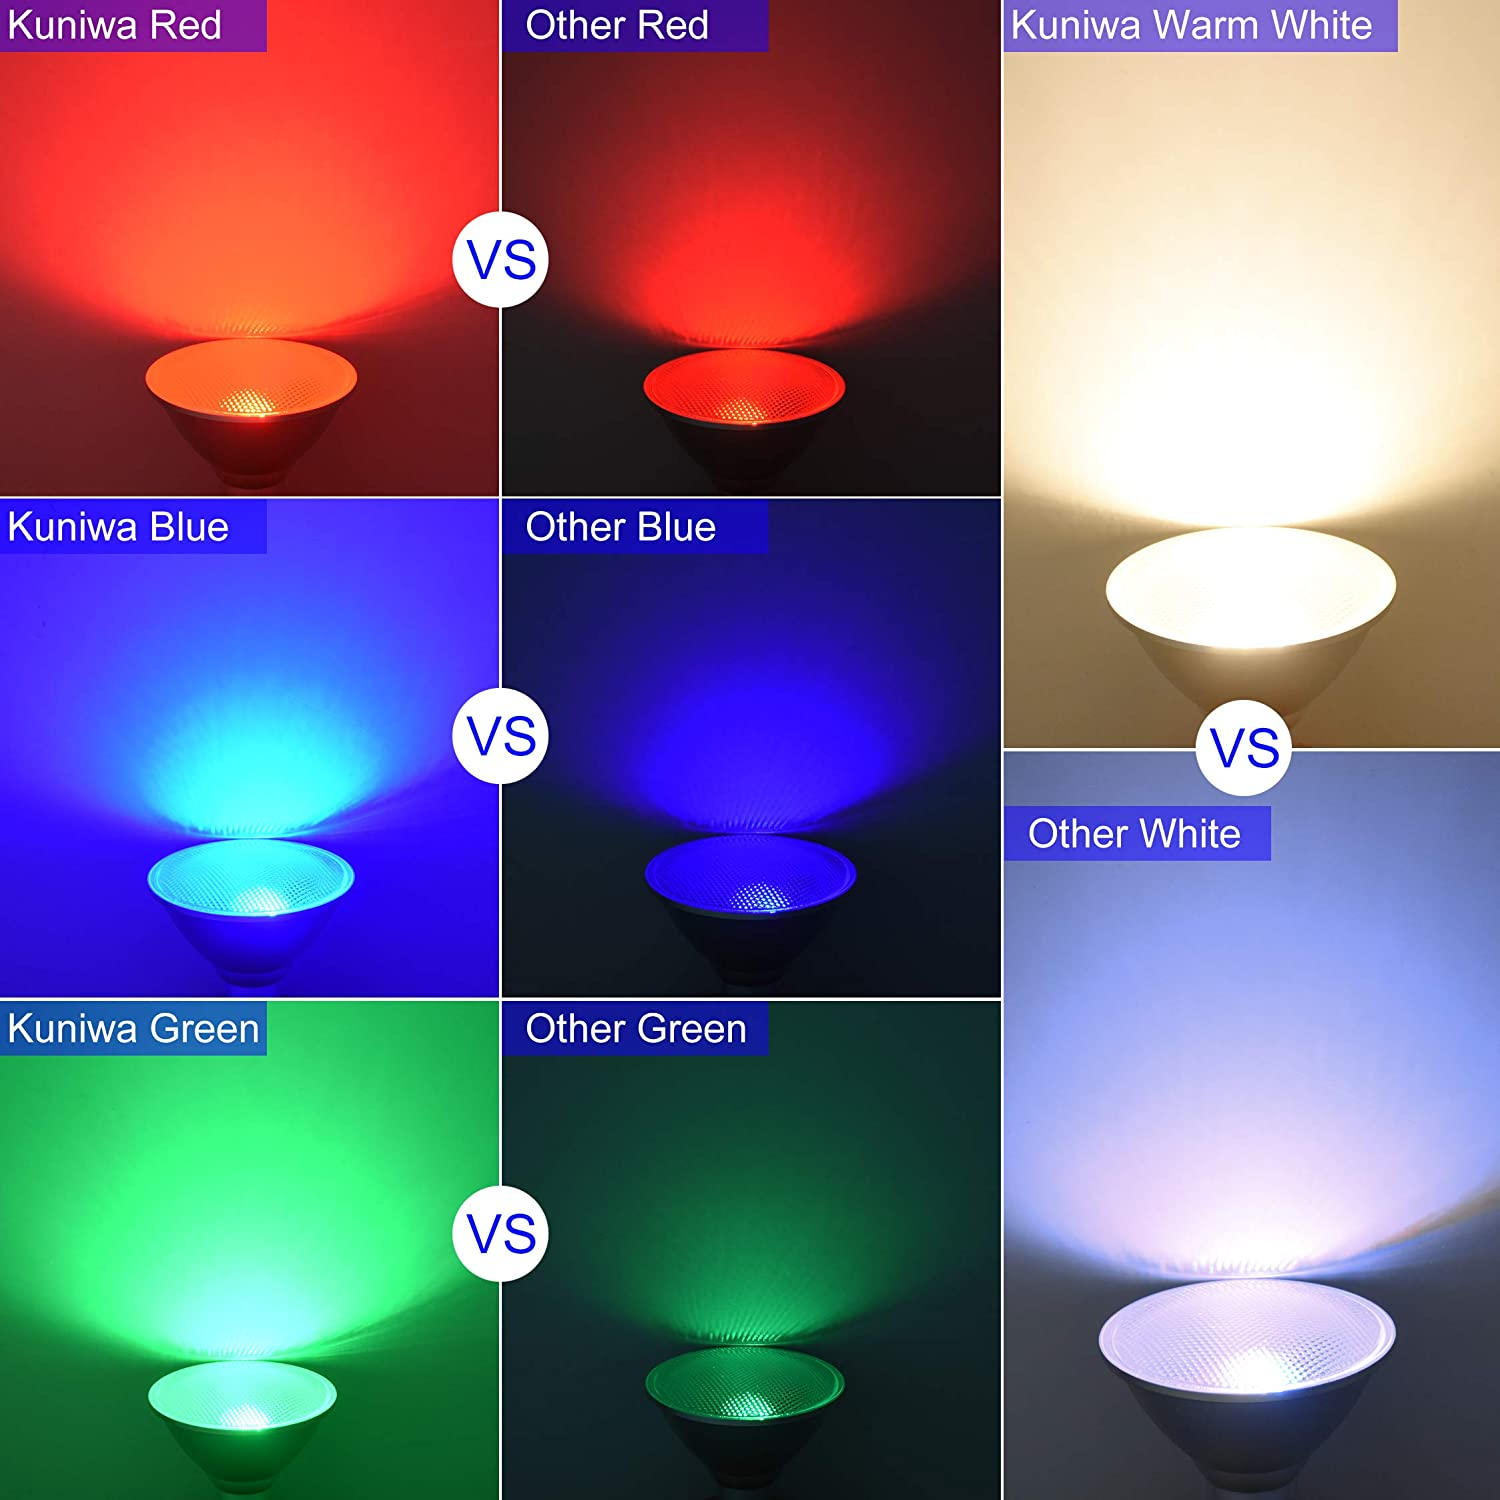 30W E27 LED Flood Light Kuniwa IP65 Waterproof Dimmable Colour Changing Light Bulb with Remote Control for Indoor//Outdoor Home Room Party Decoration 5000K RGB+Daylight PAR38 LED Spotlight Screw